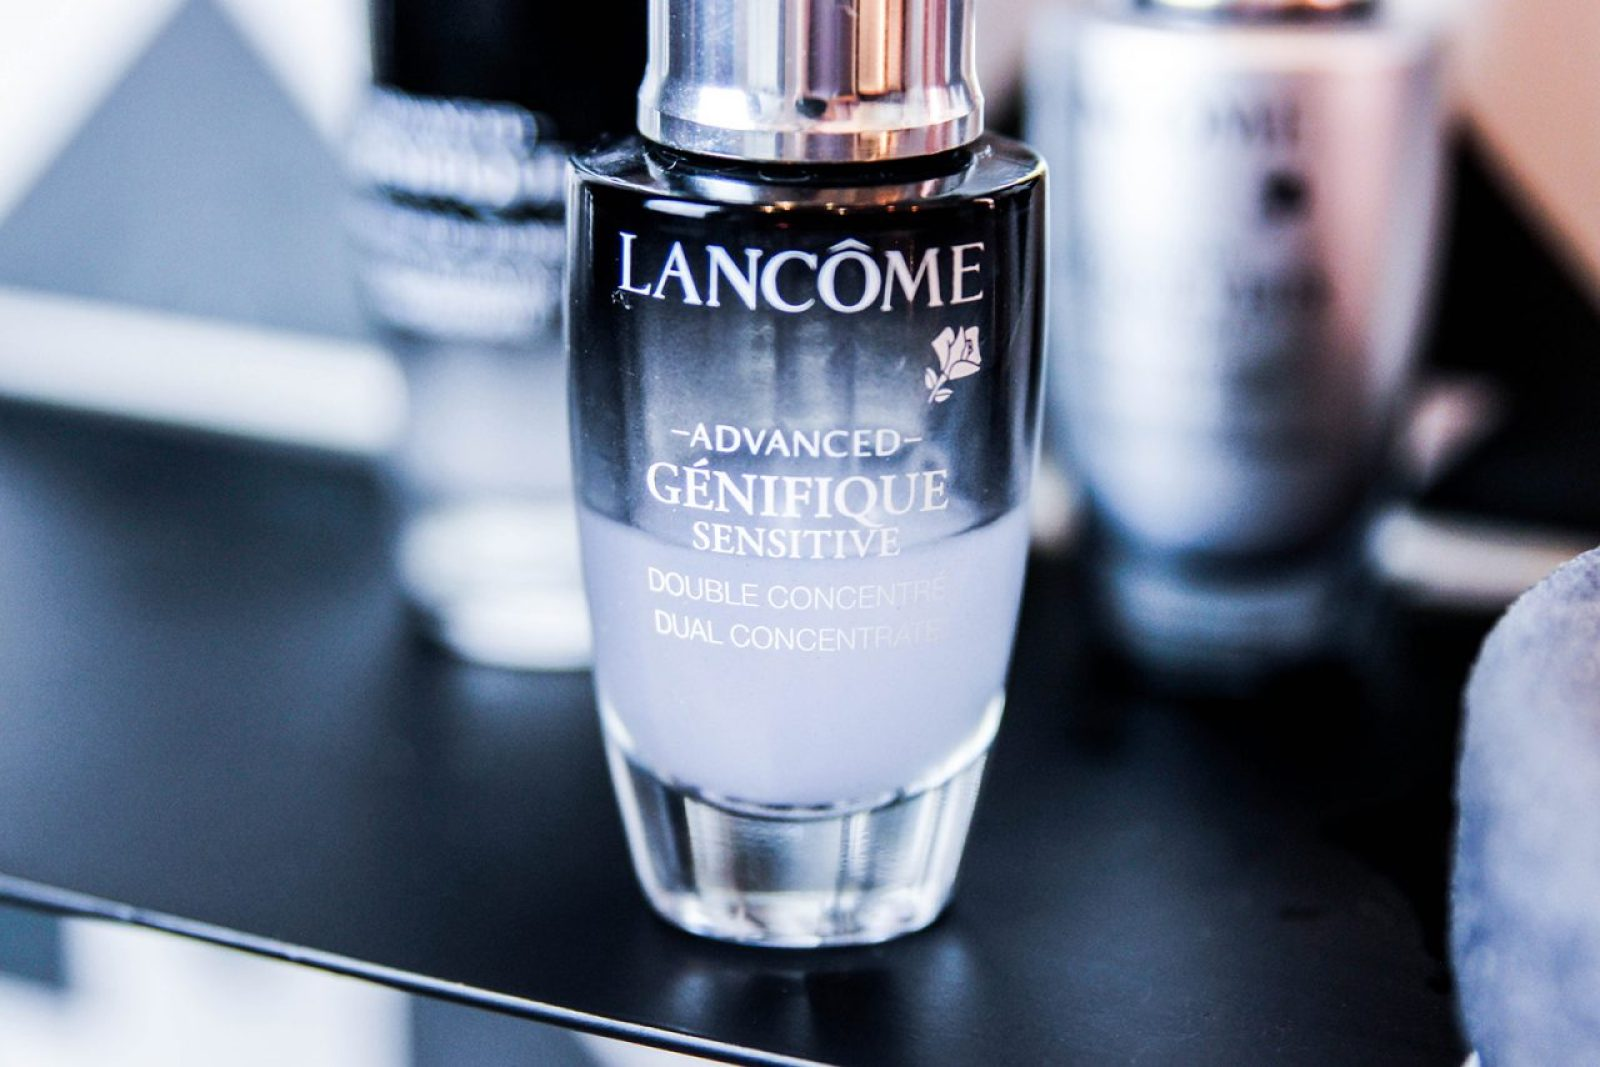 lancome-Serum-Genifique Sensitive-31